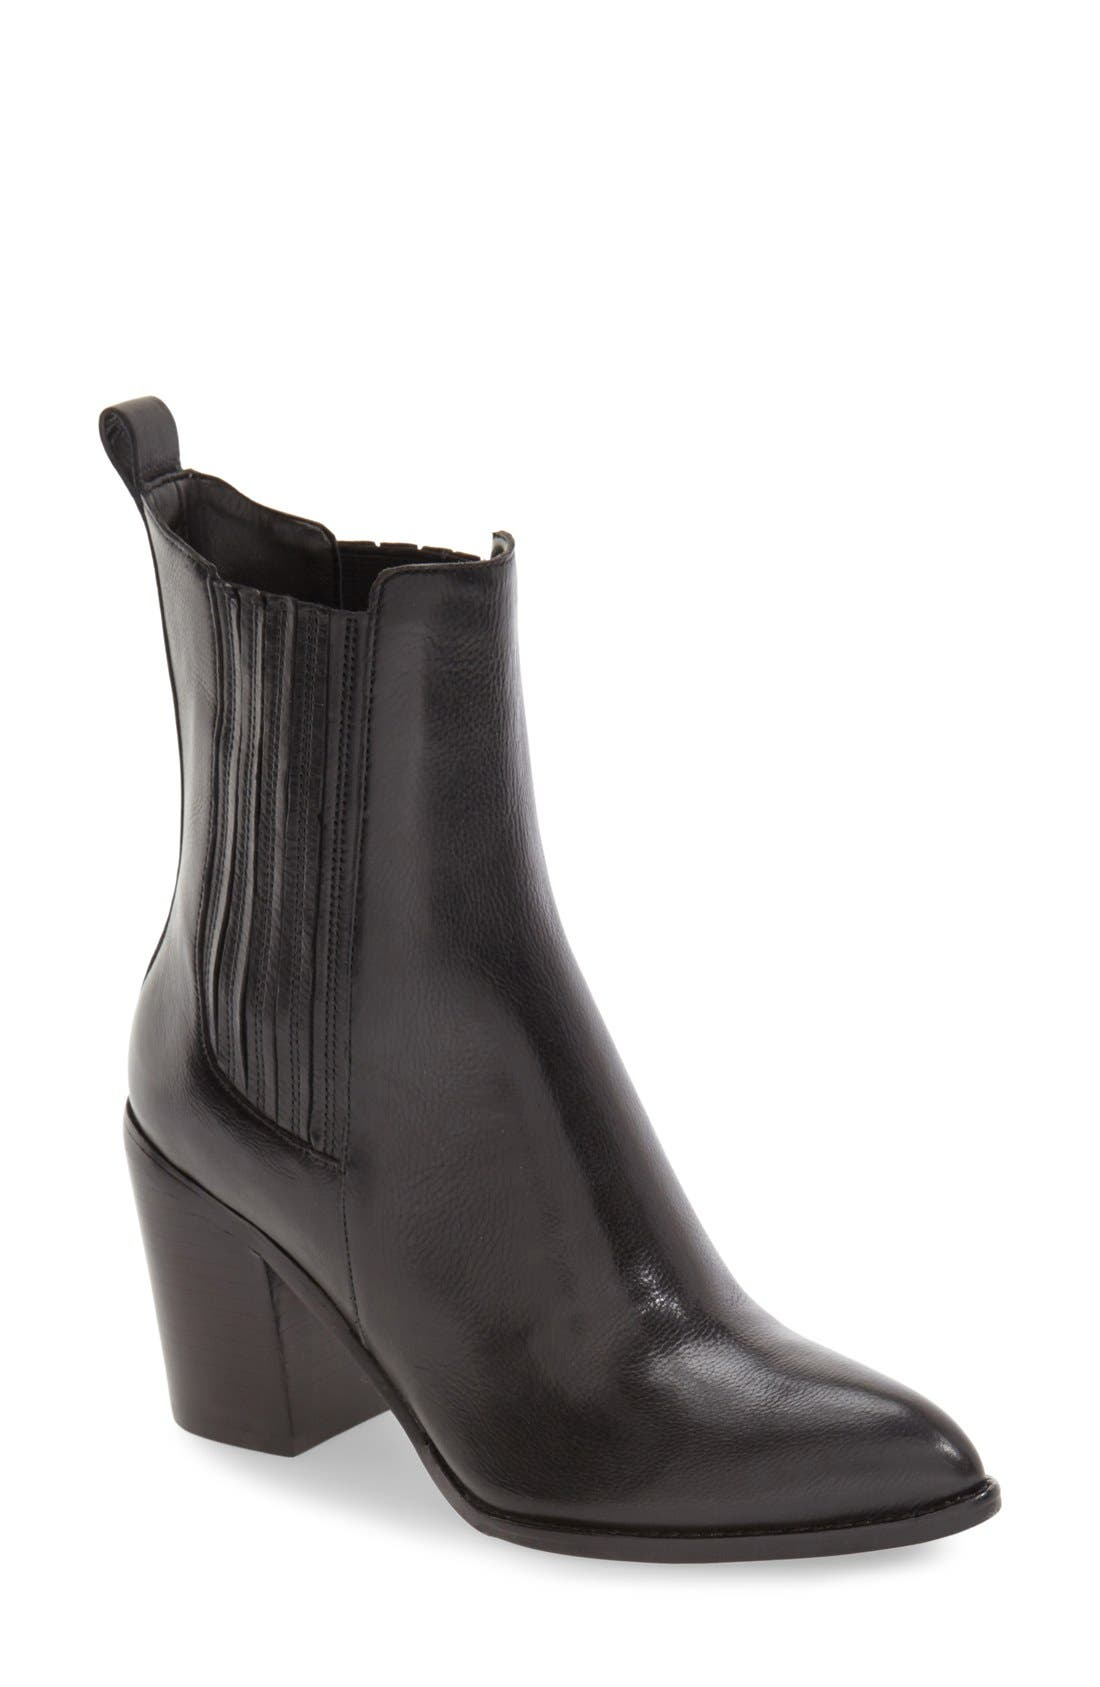 'Alisa' Pointy Toe Chelsea Boot,                             Main thumbnail 1, color,                             001